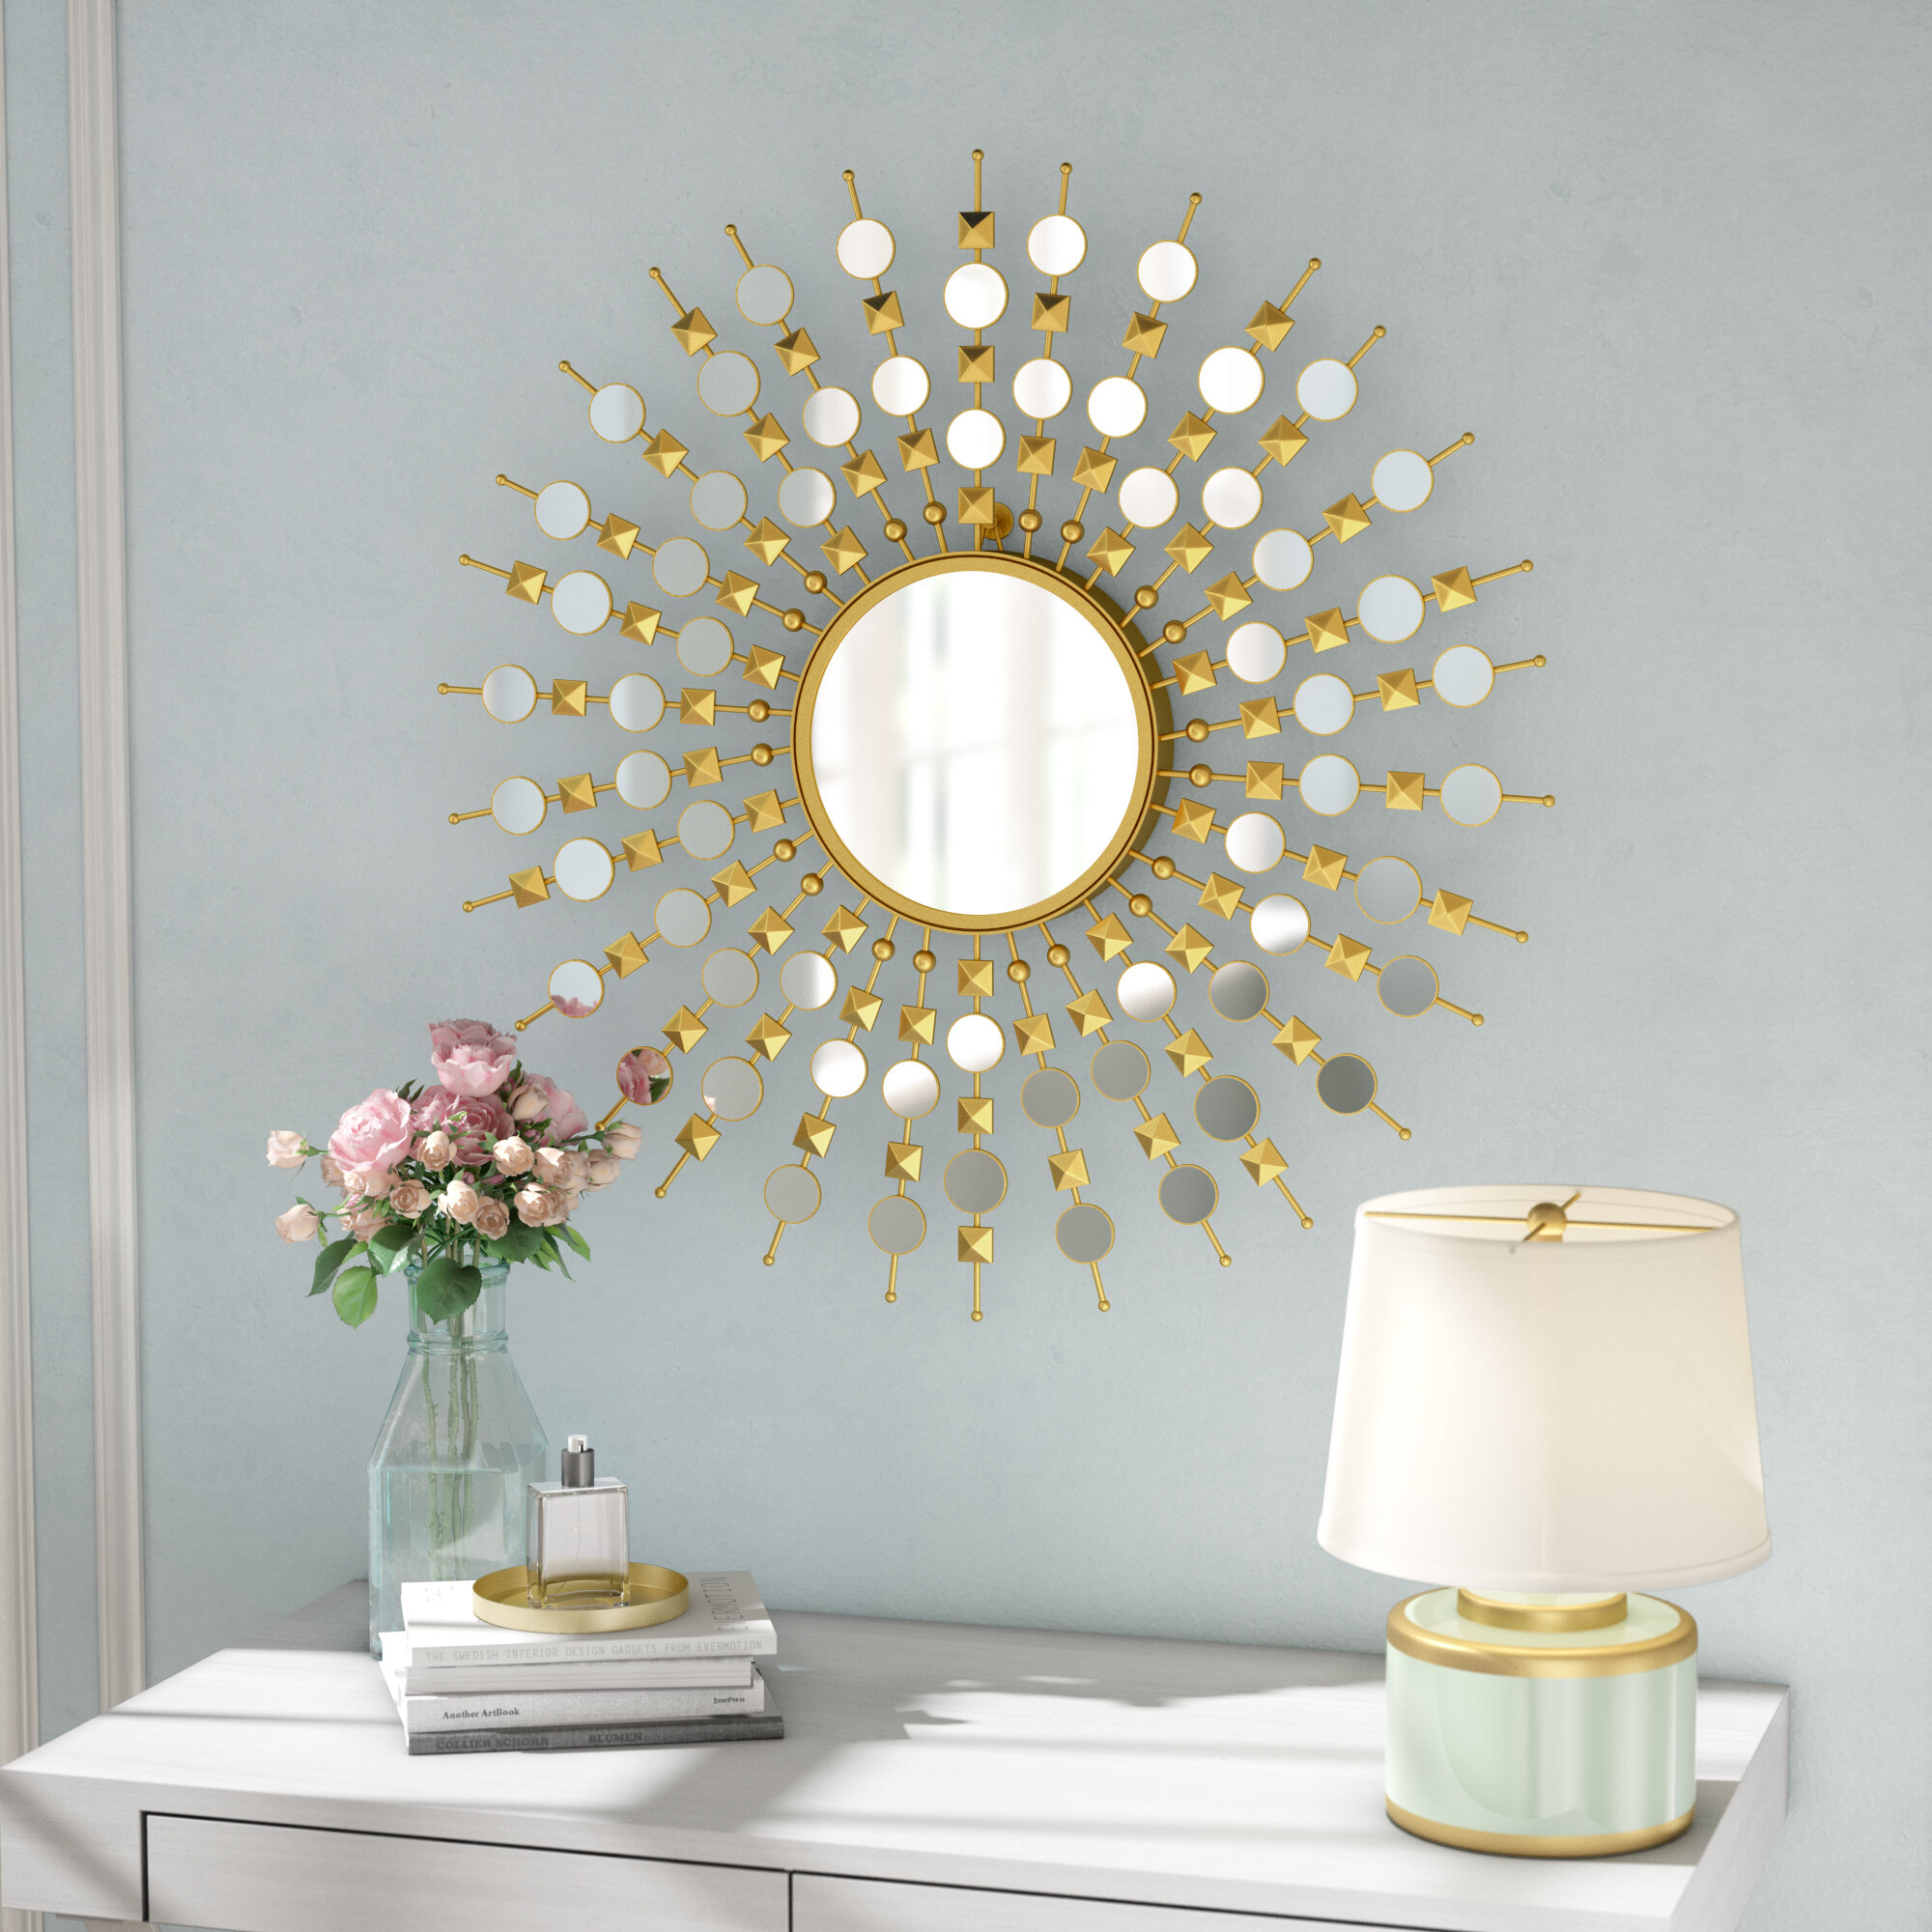 Willa Arlo Interiors Sunburst Mirrors You'll Love In 2019 Throughout Brylee Traditional Sunburst Mirrors (View 10 of 20)